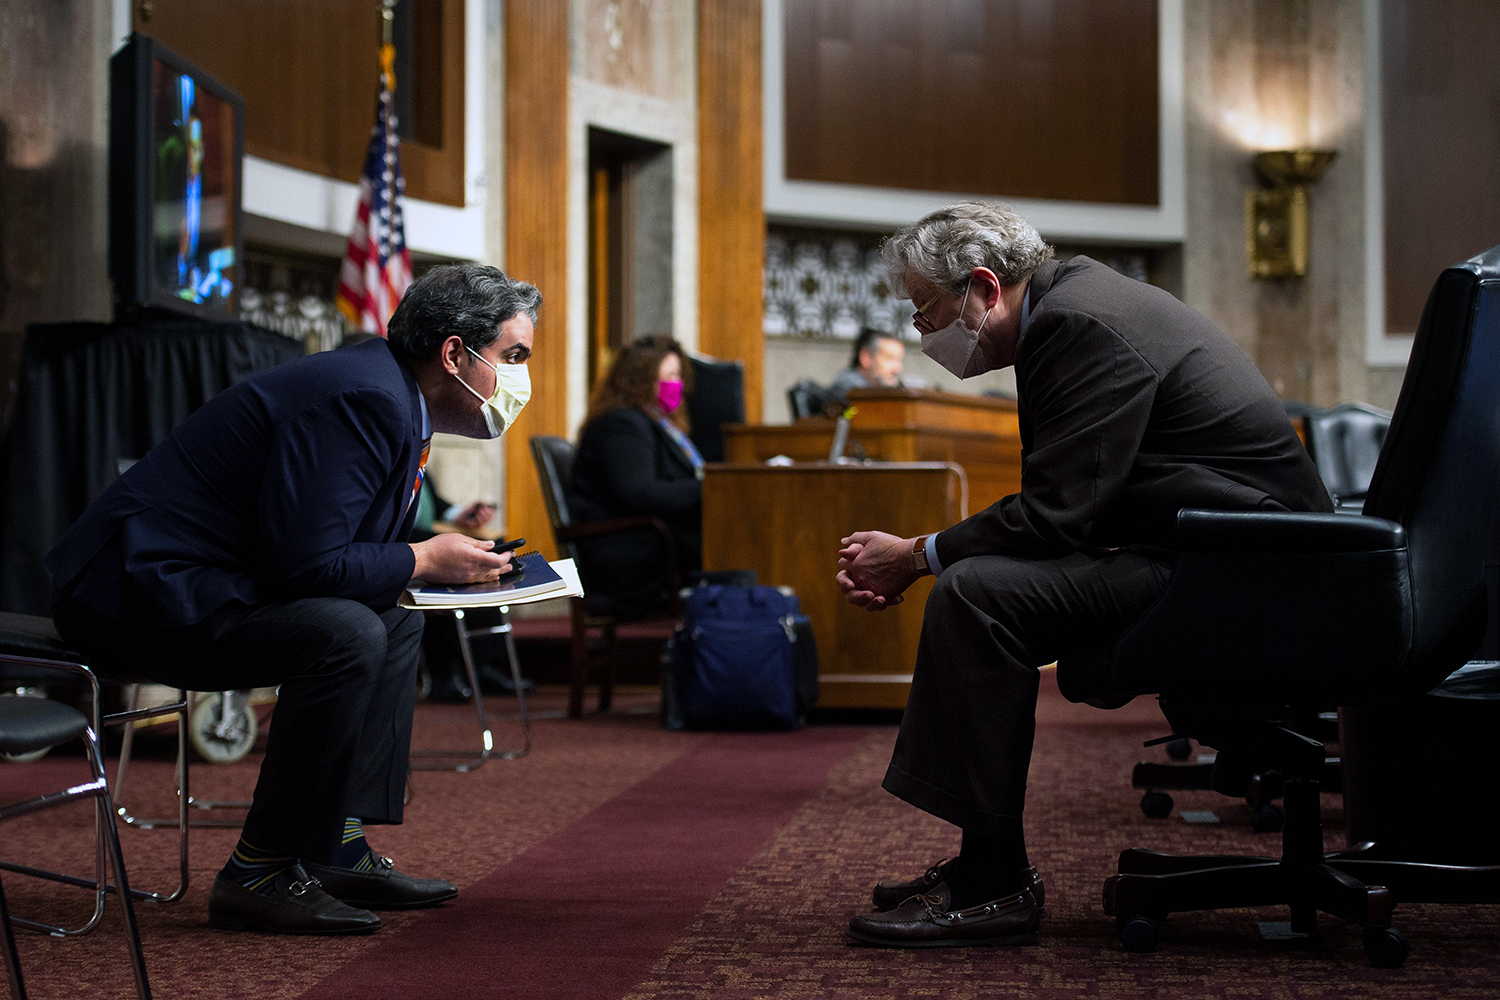 U.S. Sen. John Kennedy (right) speaks with a staff member during a Senate Judiciary Committee nomination hearing on Capitol Hill in Washington, D.C., on May 6. CAROLINE BREHMAN/POOL/AFP via Getty Images